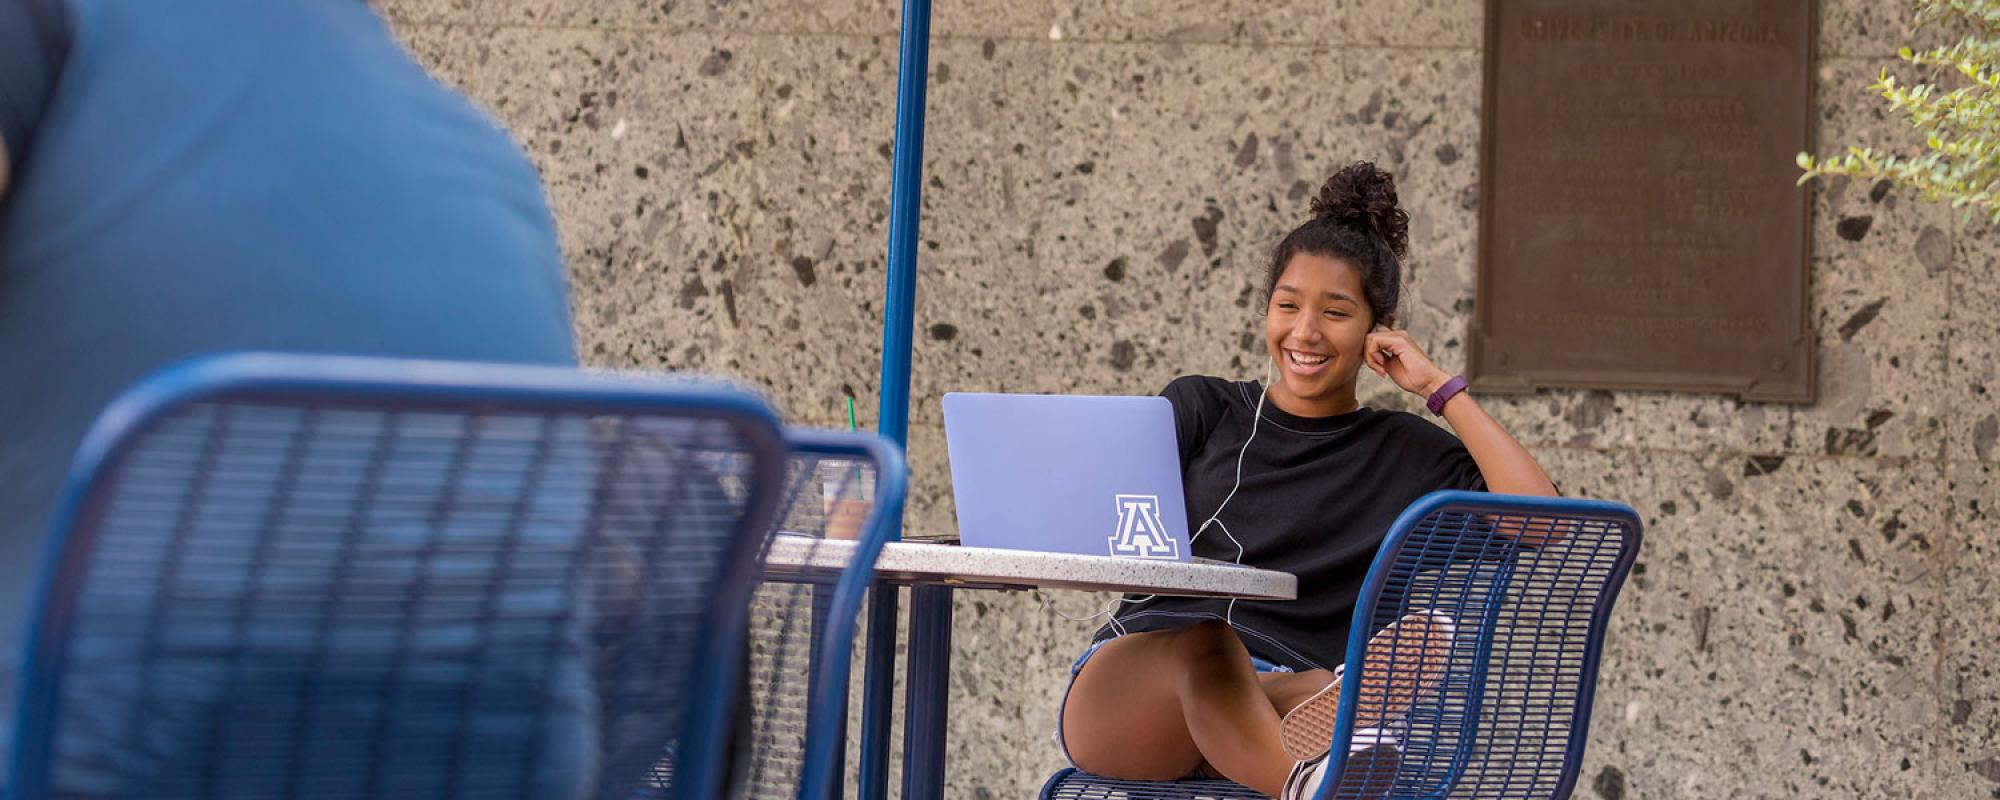 Young woman sitting outside at a table and smiling at her laptop computer